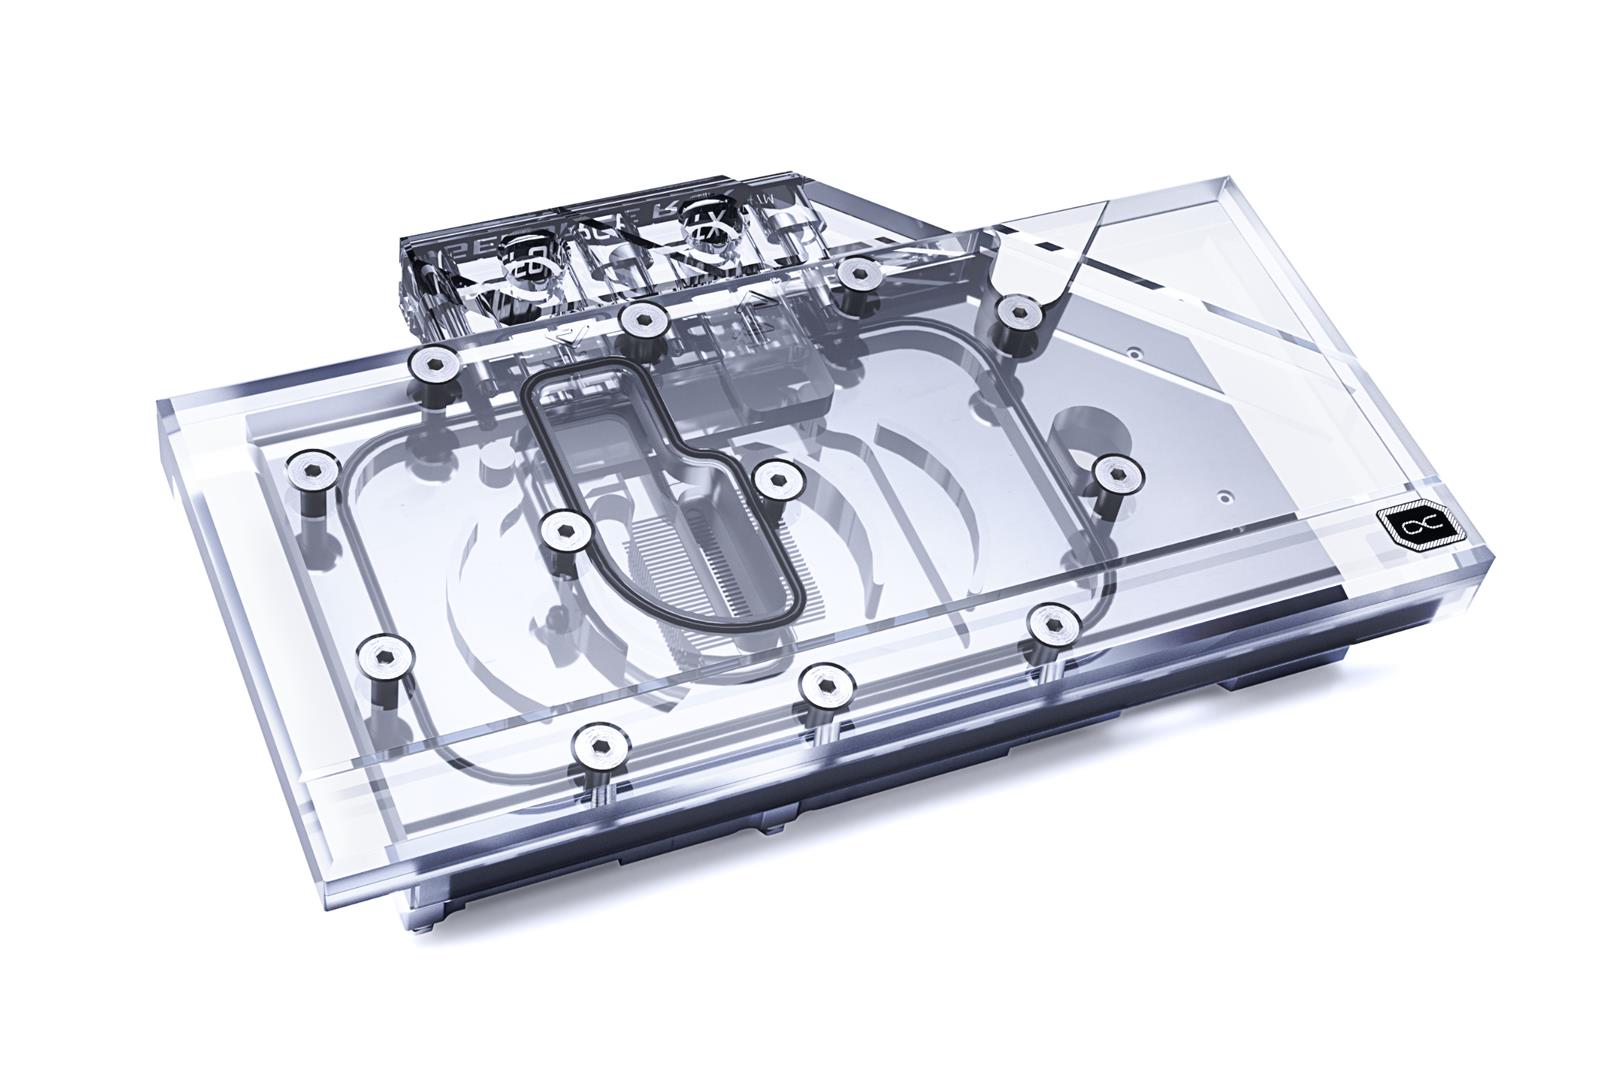 Alphacool Releases Eisblock Aurora Plexi GPX-N RTX 3080 Founders Edition with Backplate